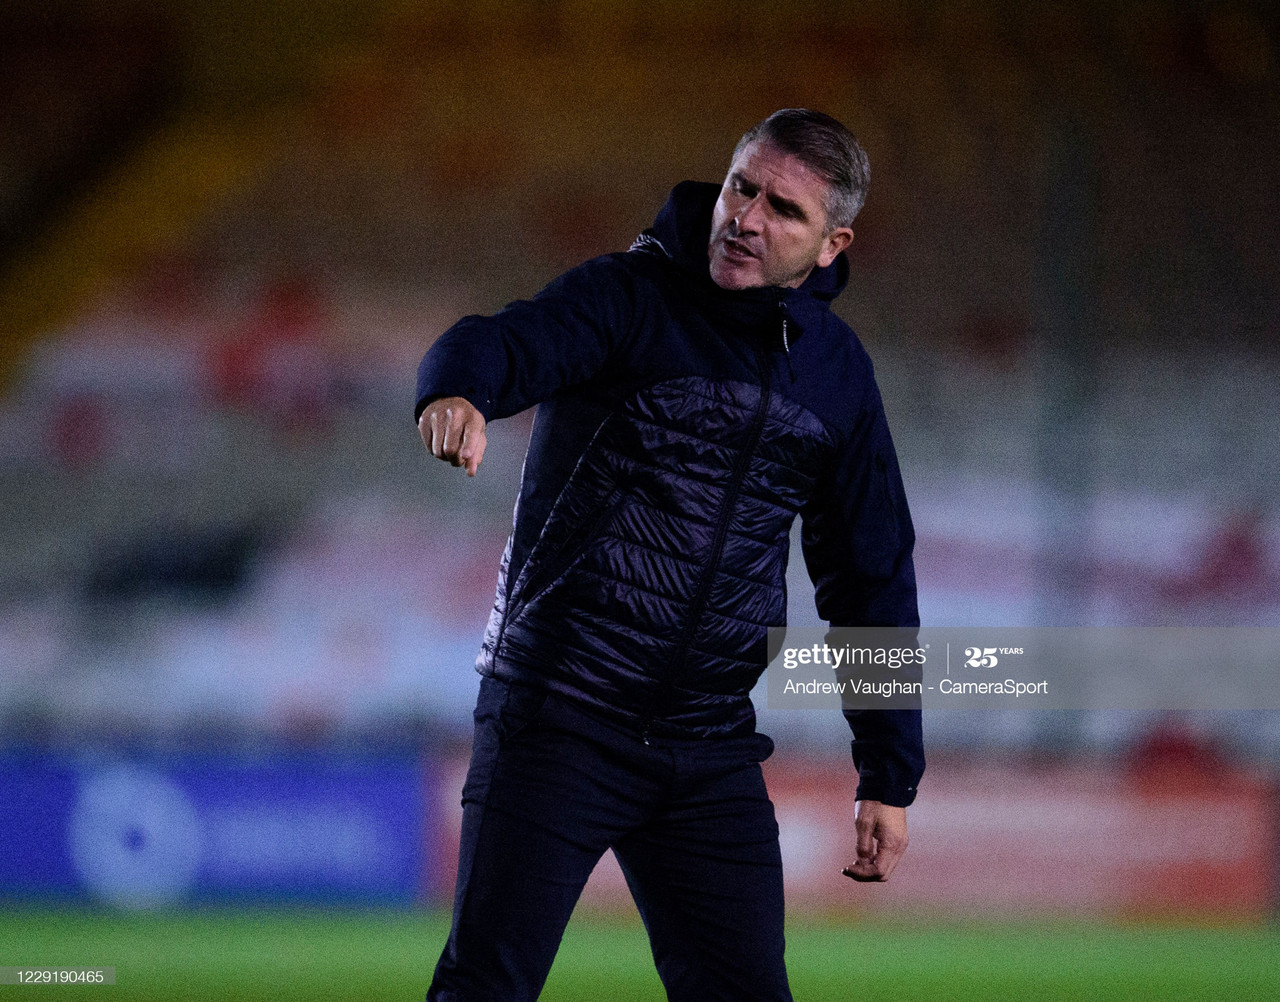 The key quotes from Ryan Lowe after Plymouth Argyle defeat at Weston Homes Stadium